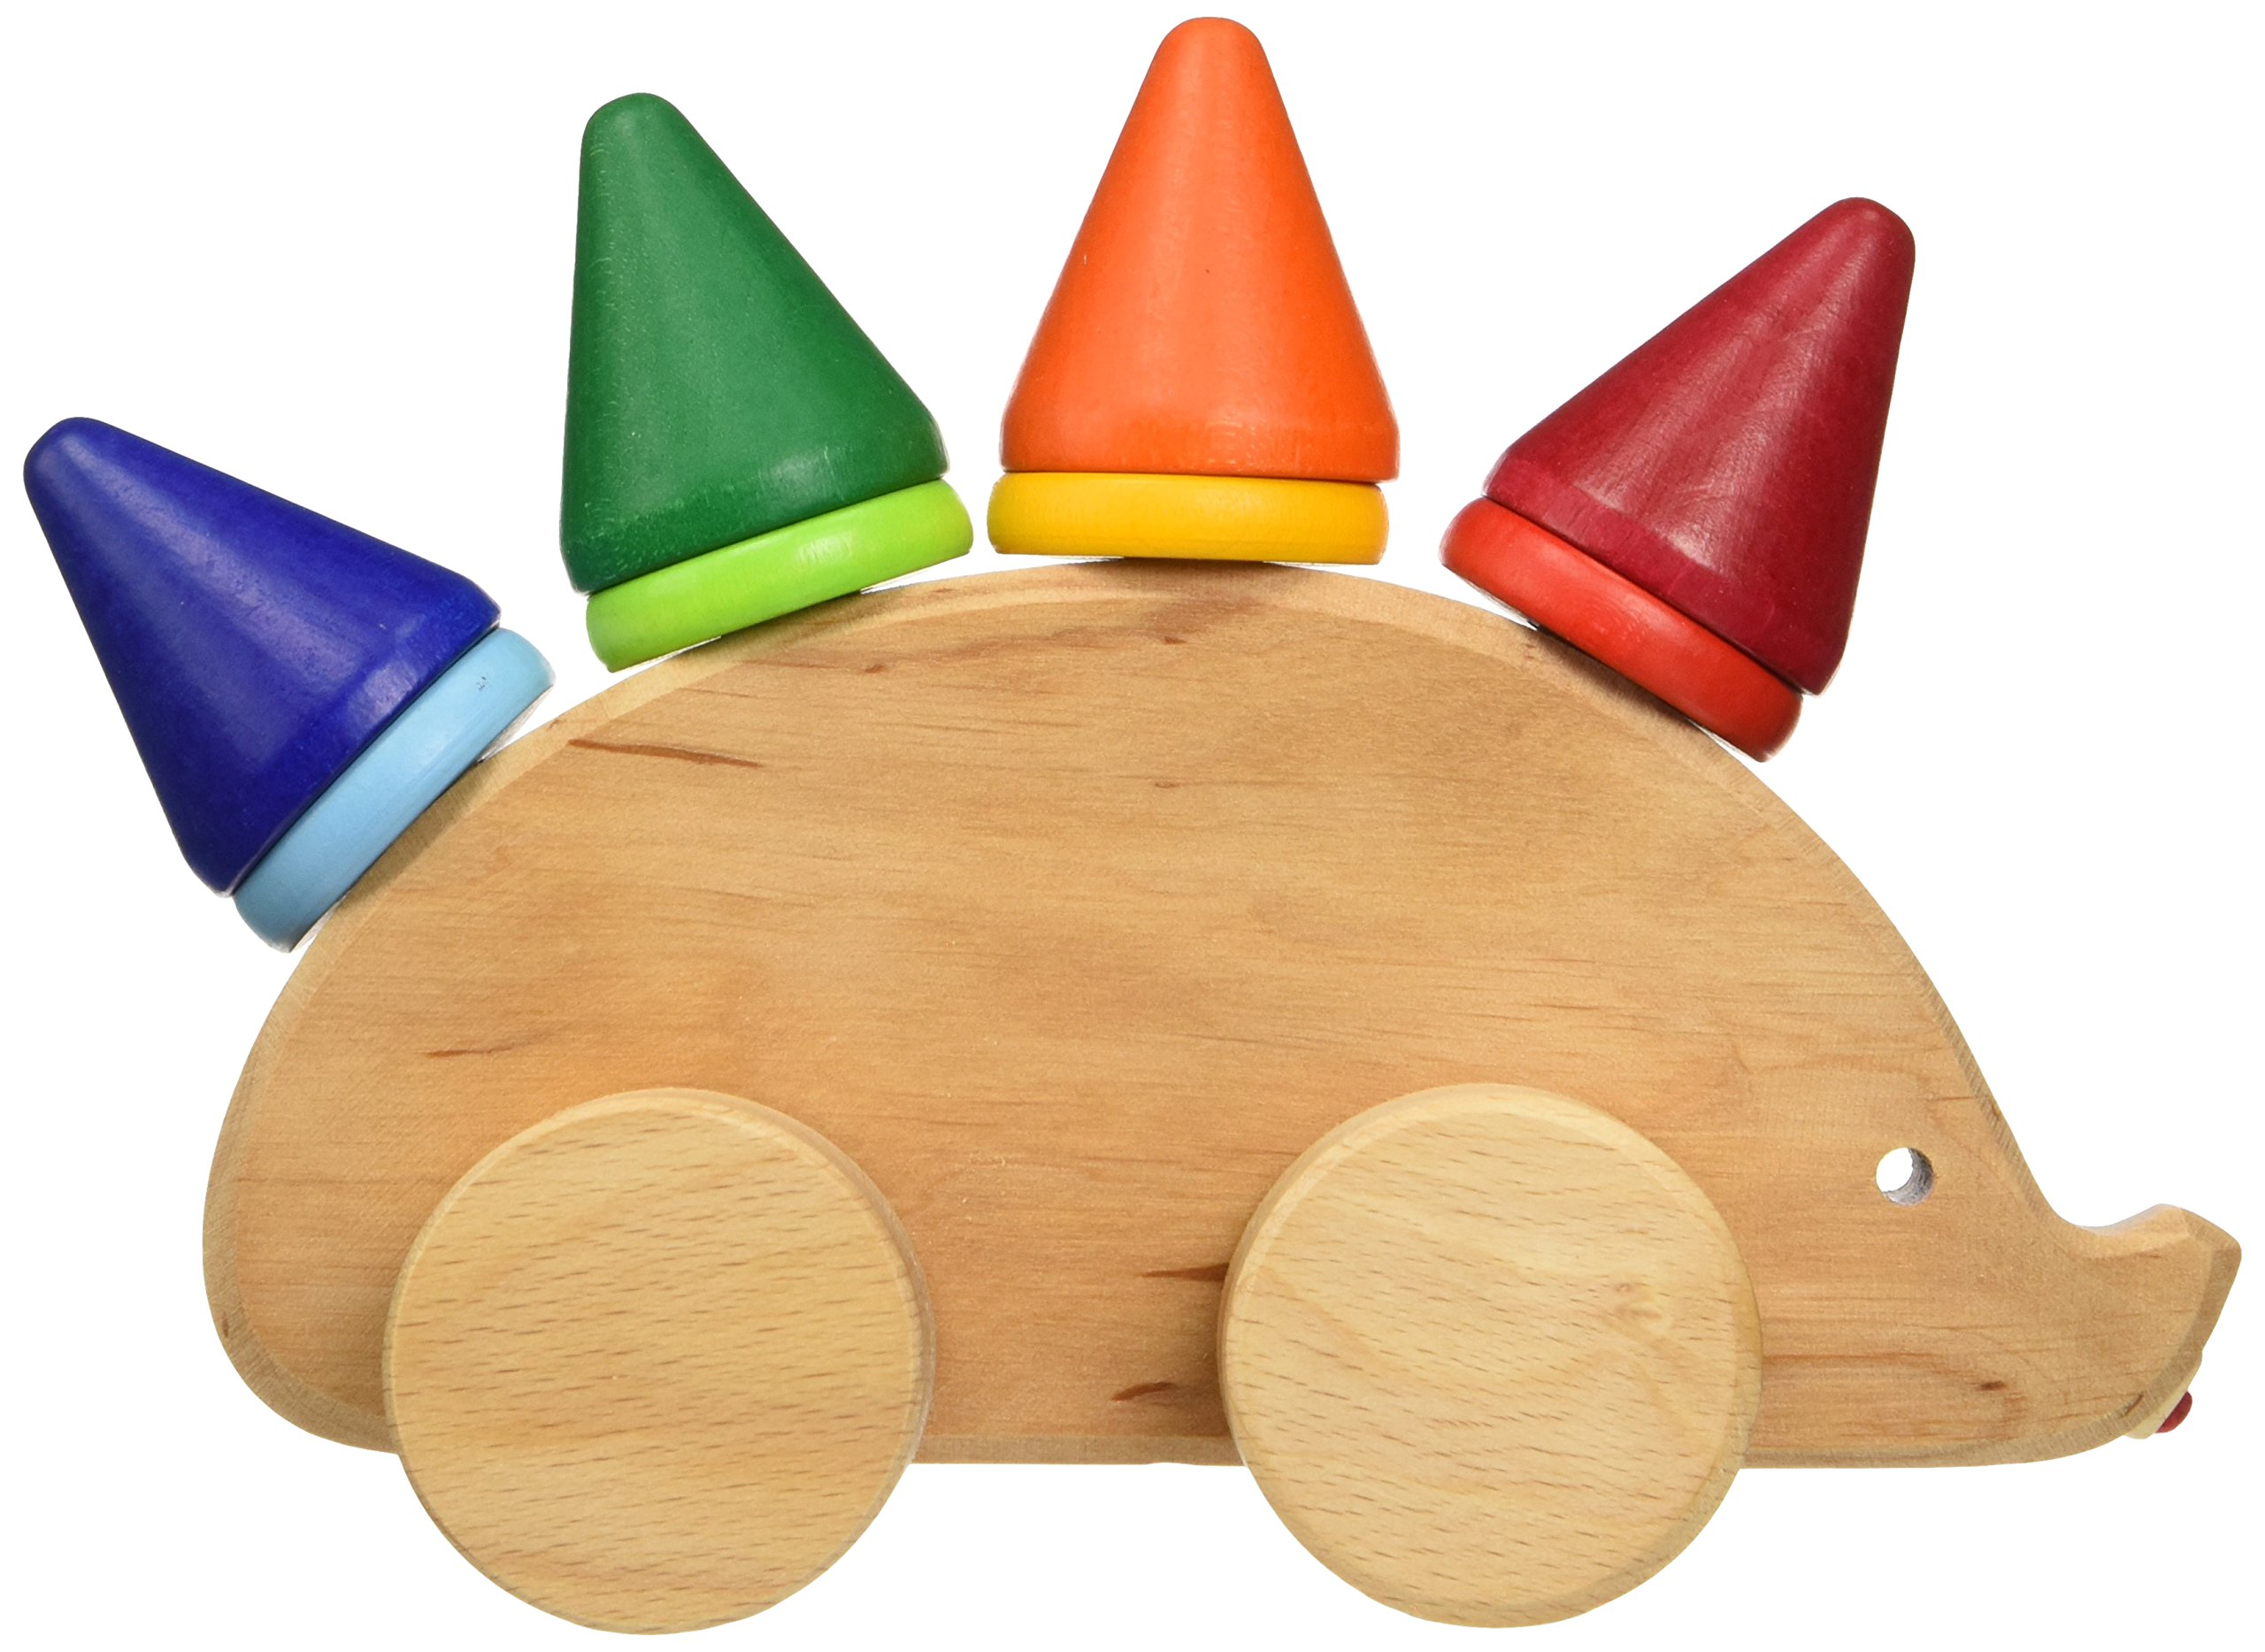 Grimm's Toddler Hedgehog - Natural Wood Pull Toy with 8 Colorful Cone & Disc Stackers